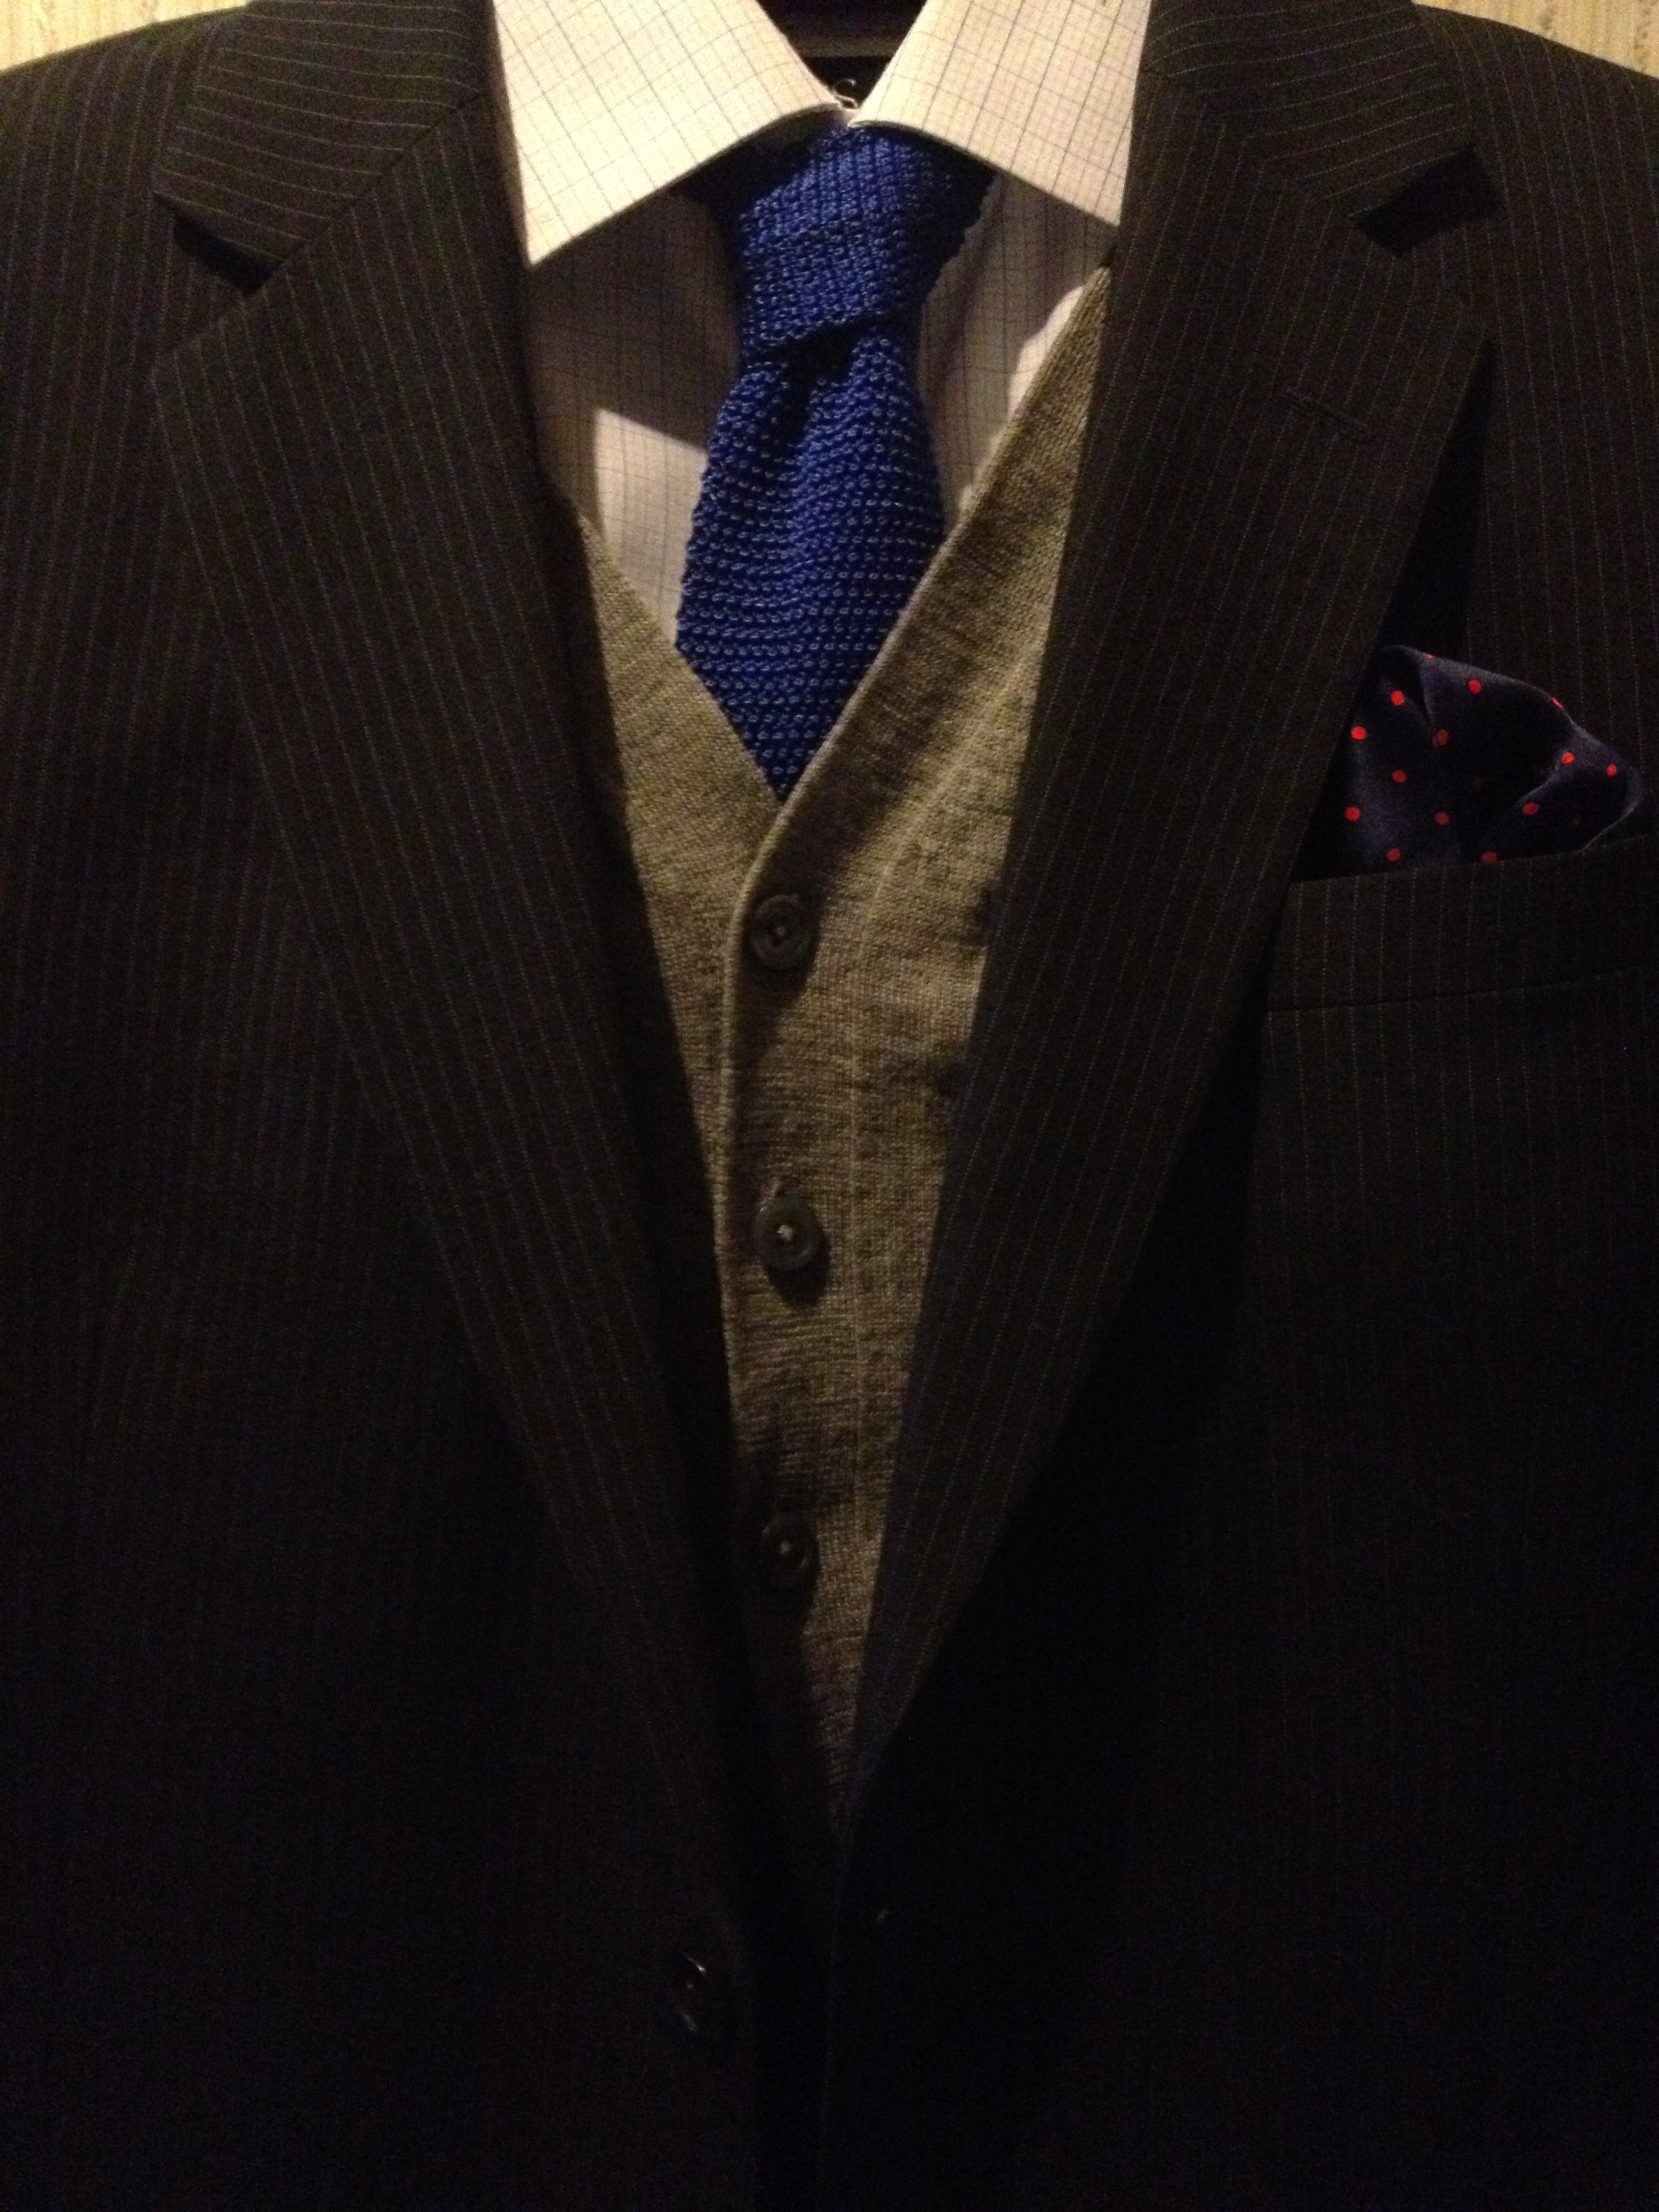 On Dressing Well - Southern Ash